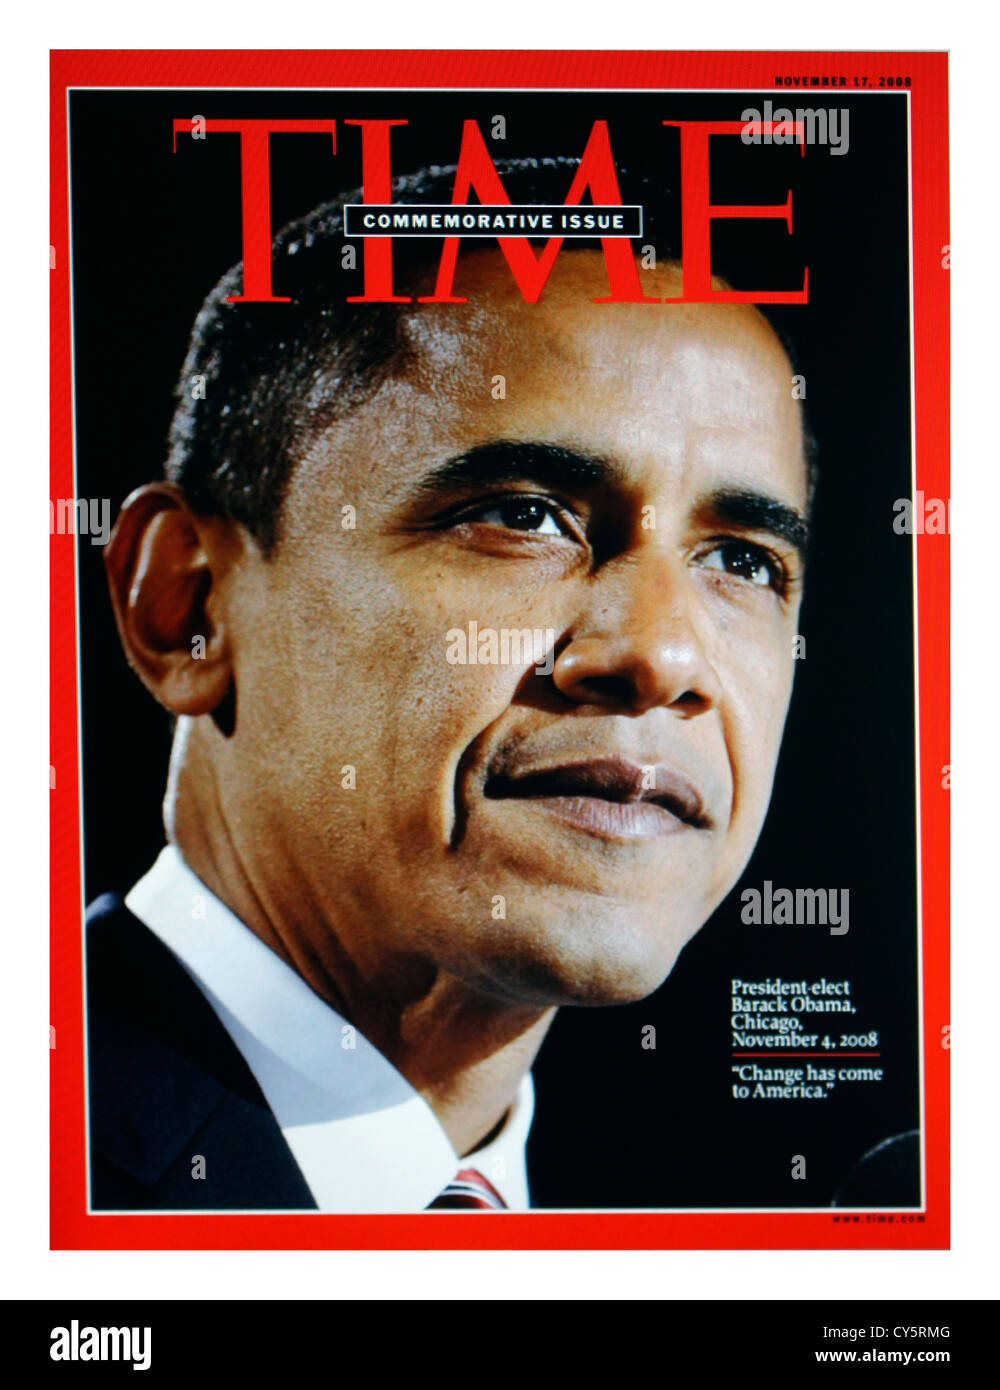 Barack Obama TIME magazine cover - related to U.S Elections 2013 - Stock Image